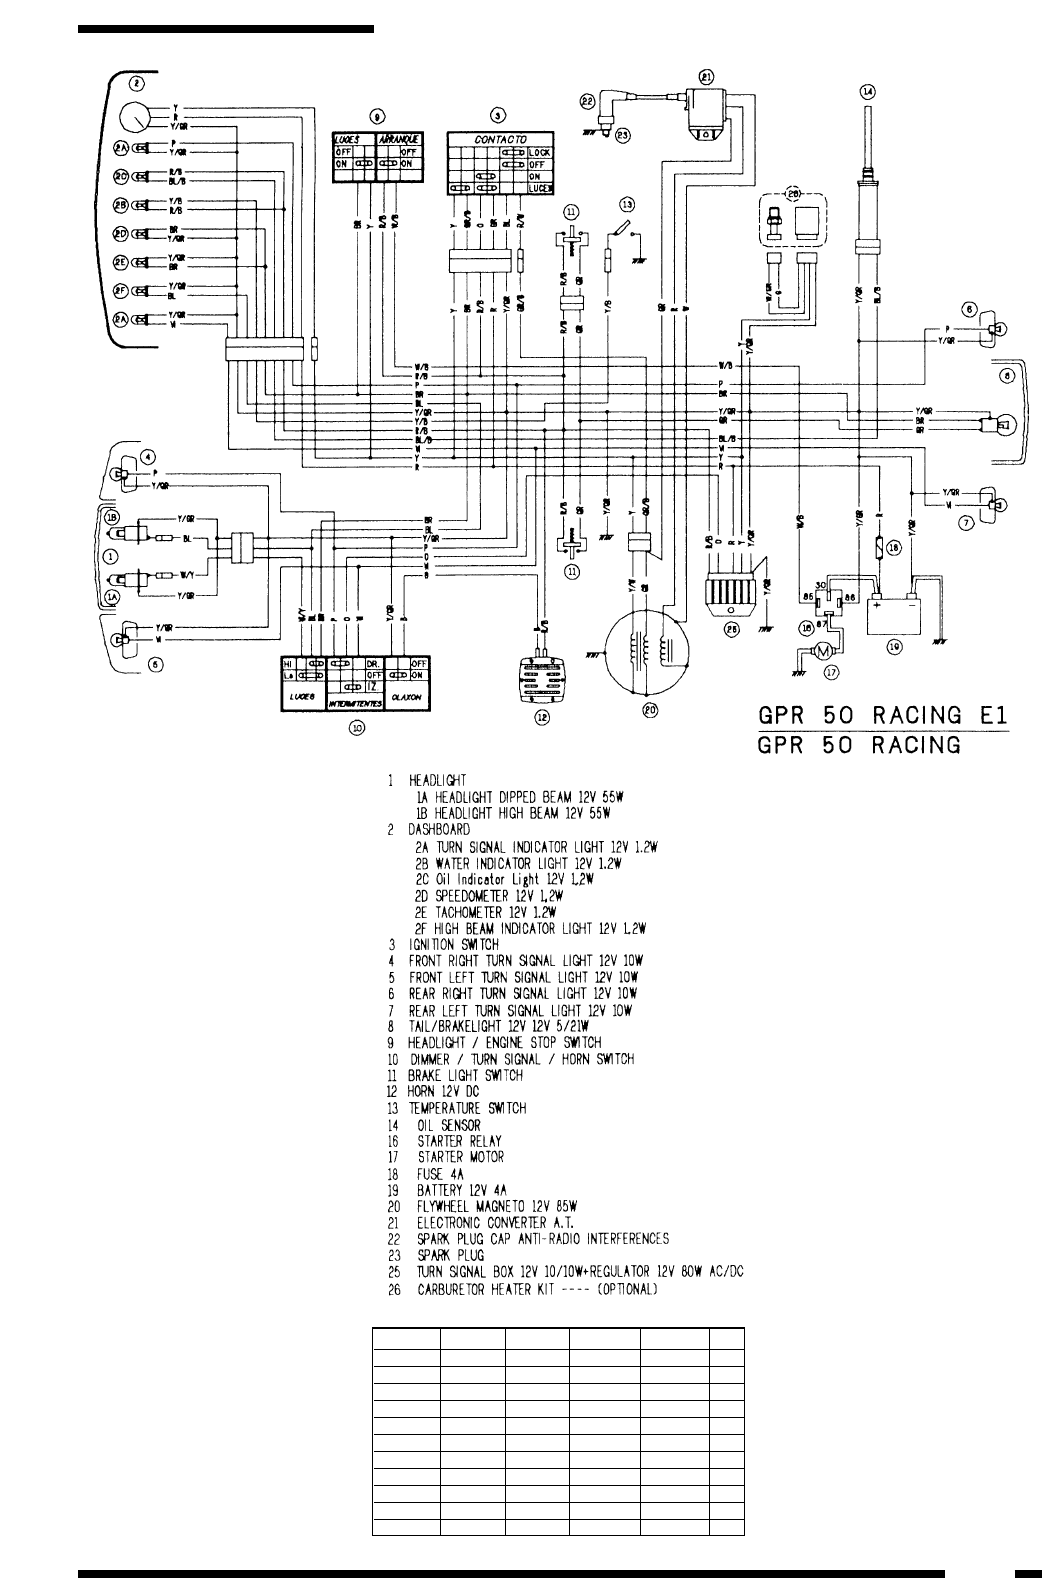 Diagram Yamaha Dt 50 R Wiring Diagram Full Version Hd